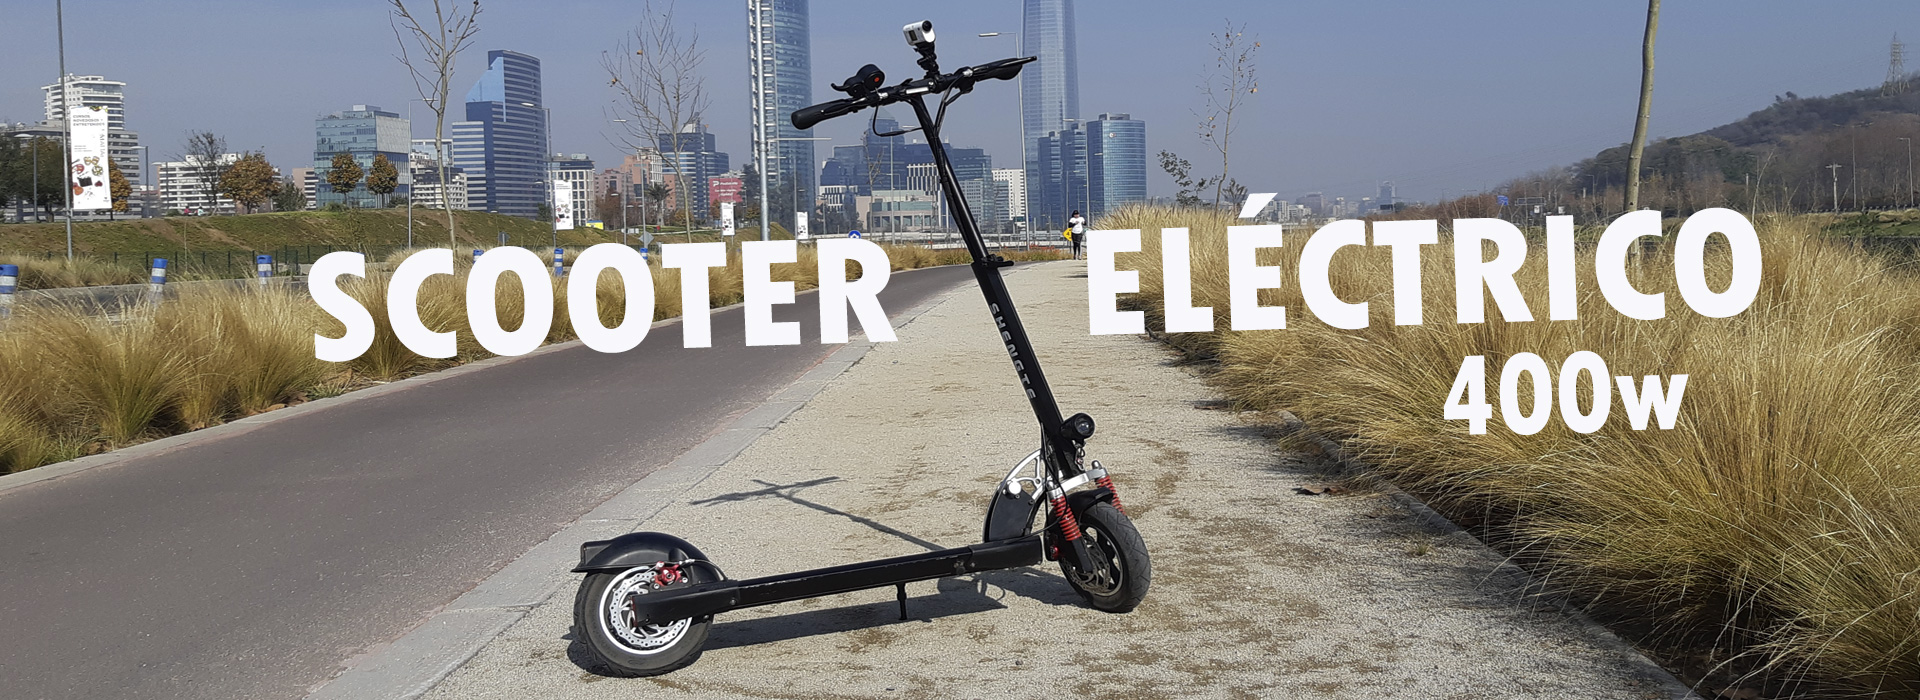 SCOOTERS ELÉCTRICOS 400w